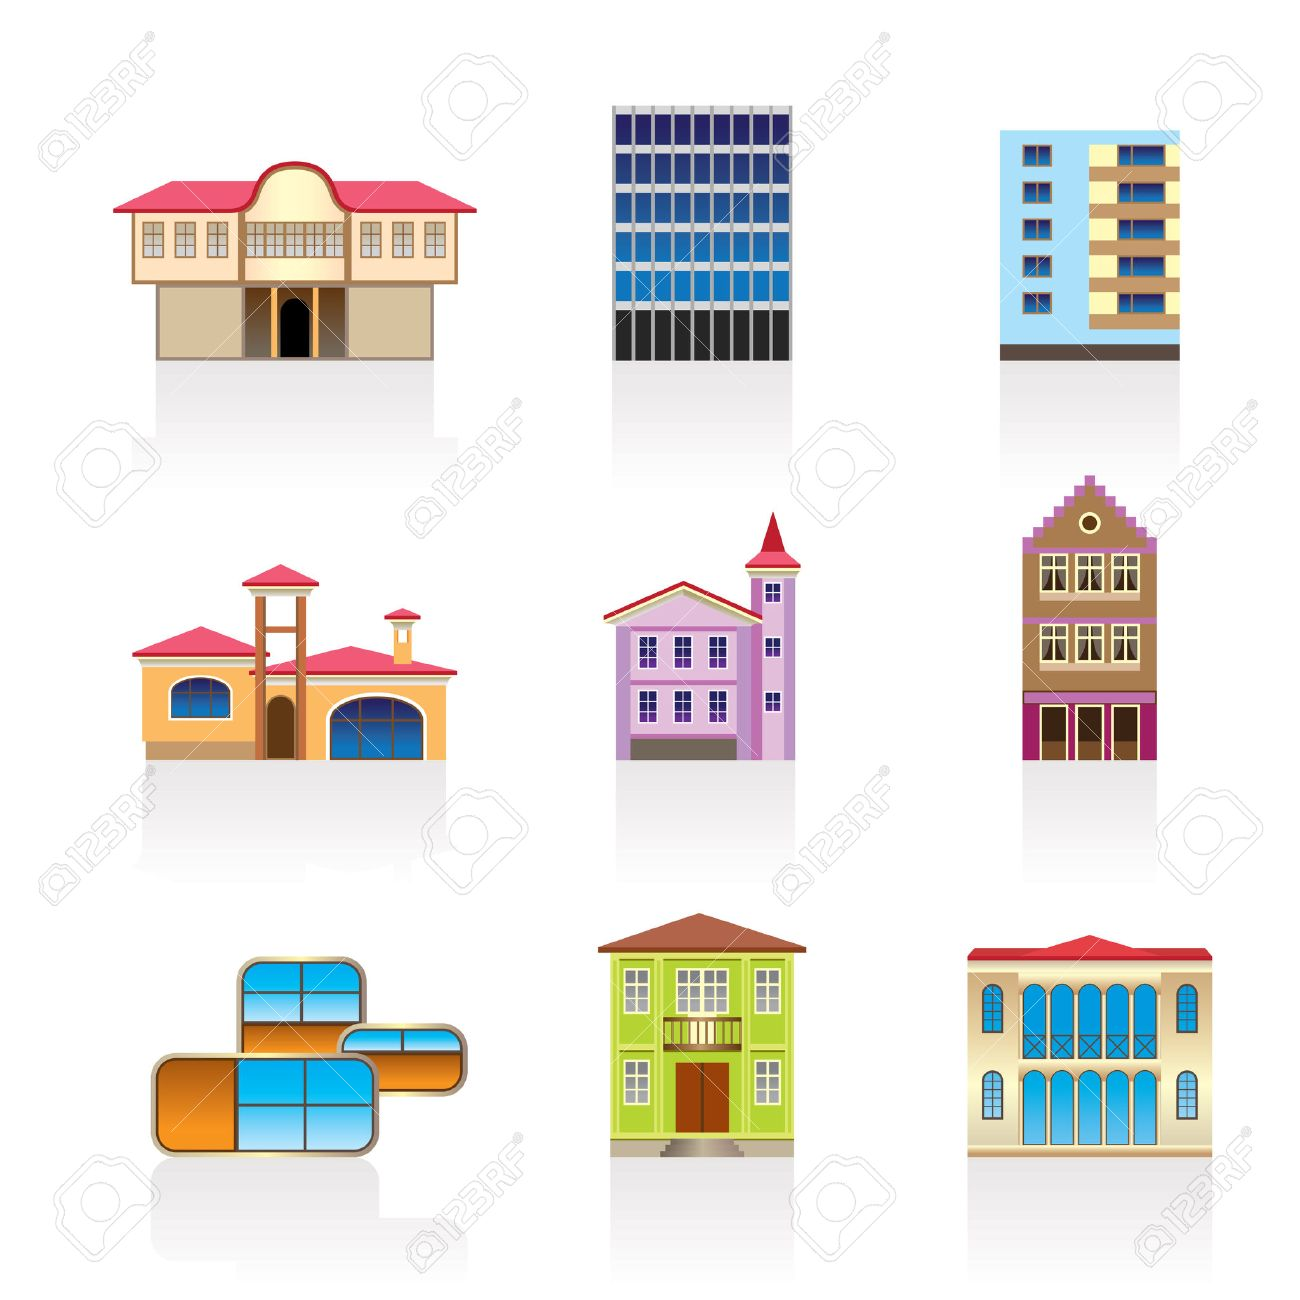 different kind of houses and buildings - Illustration 2 Stock Vector - 7071410